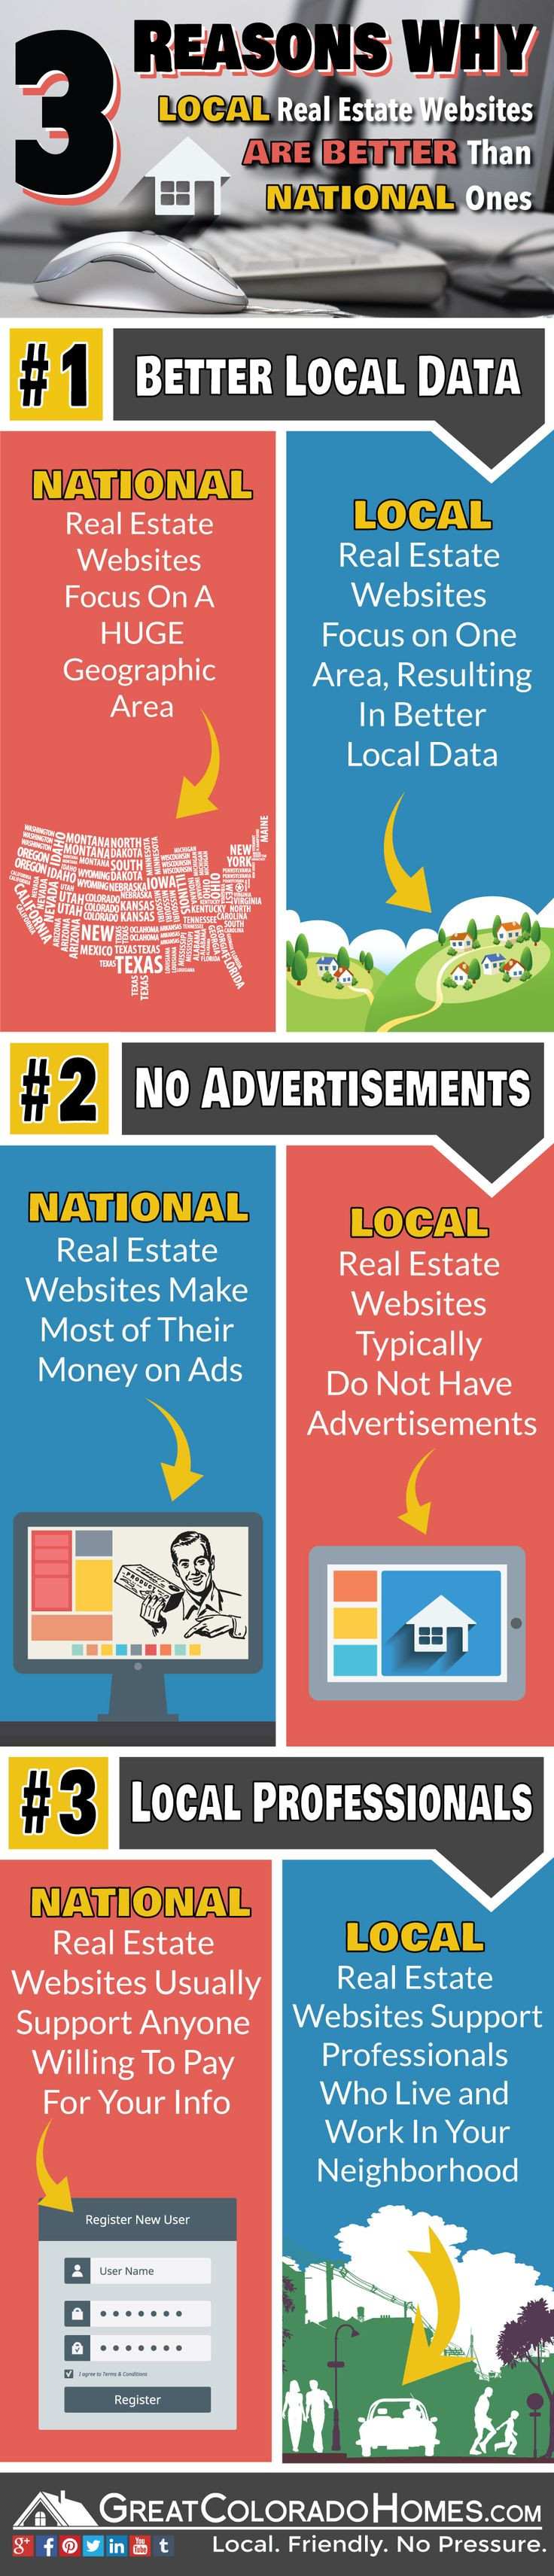 3 Reasons Why Local Real Estate Websites Are Better Than National Ones | Realtor Tips | Zapelo software |